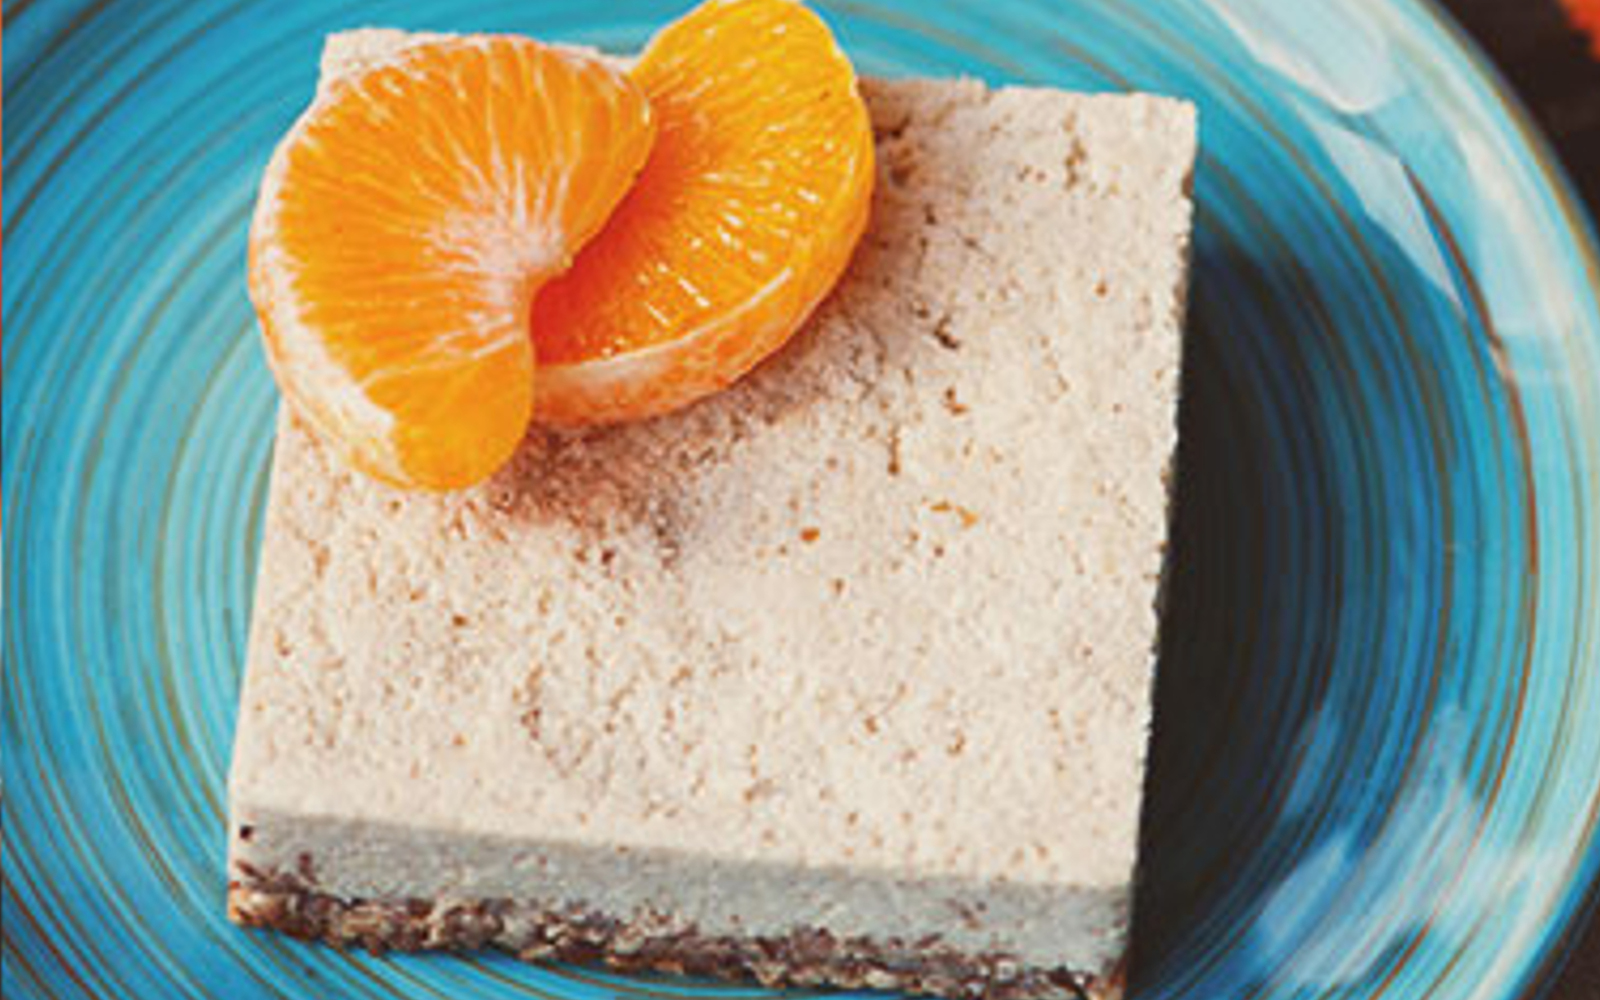 Vegan Raw Clementine Cheesecake topped with oranges